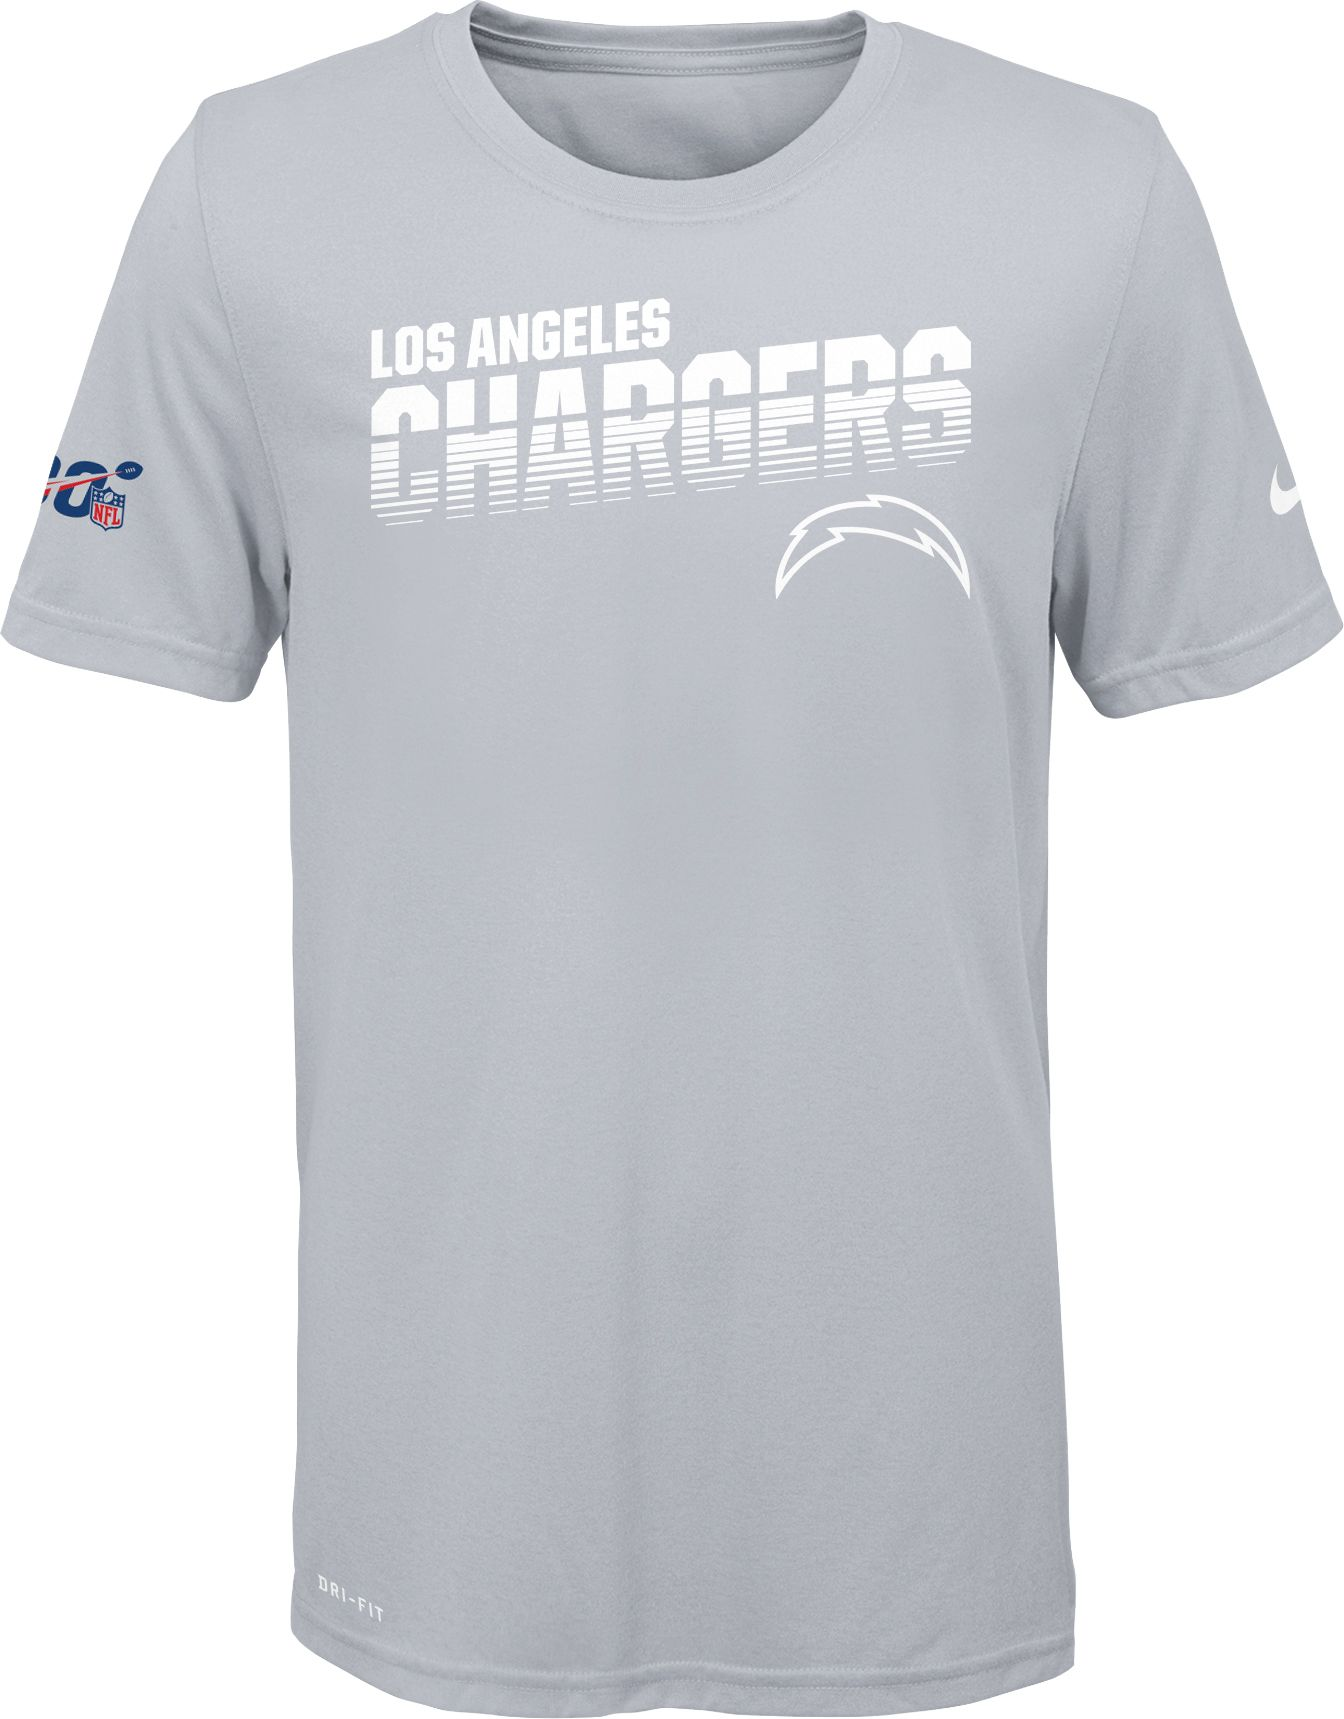 white chargers shirt